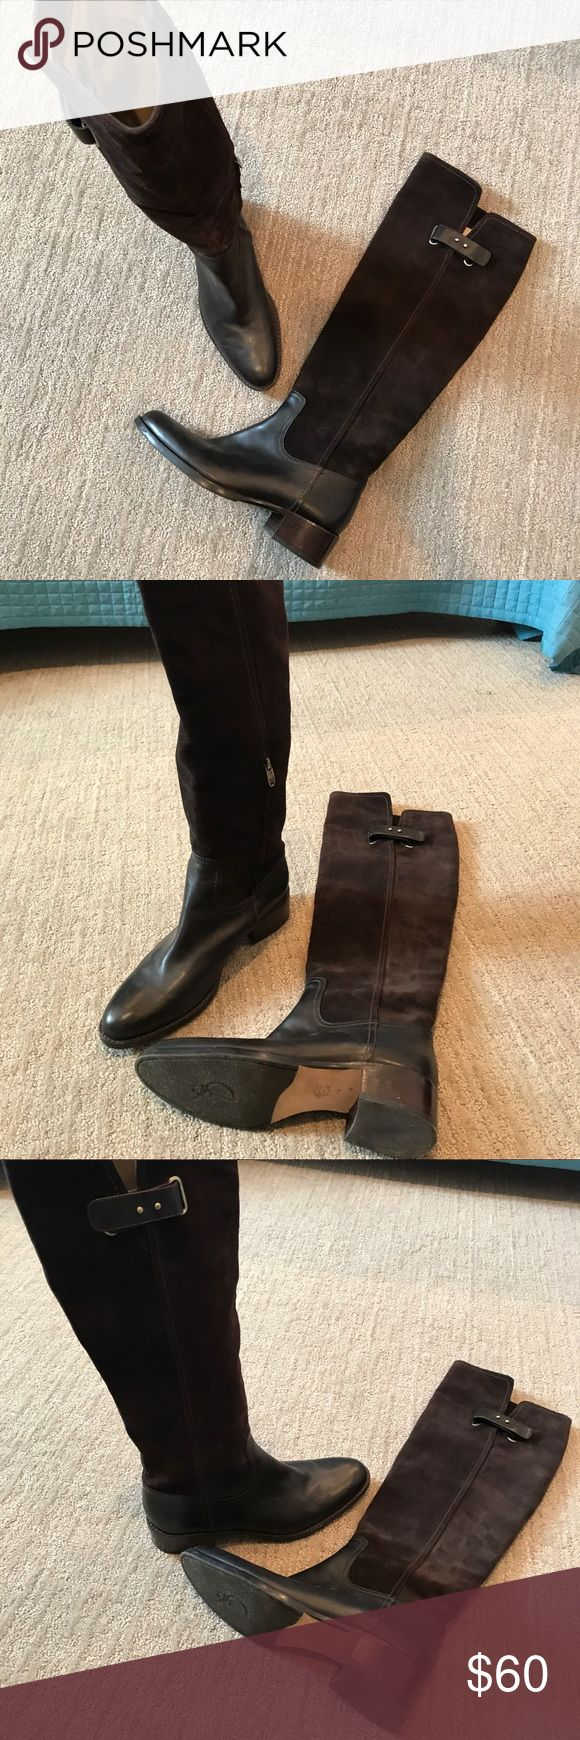 Joan & David Women's Brown Leather & Suede Boots Joan & David women's brown knee boots 8.5. Leather & suede. Worn once. Excellent condition. Joan & David Shoes Winter & Rain Boots